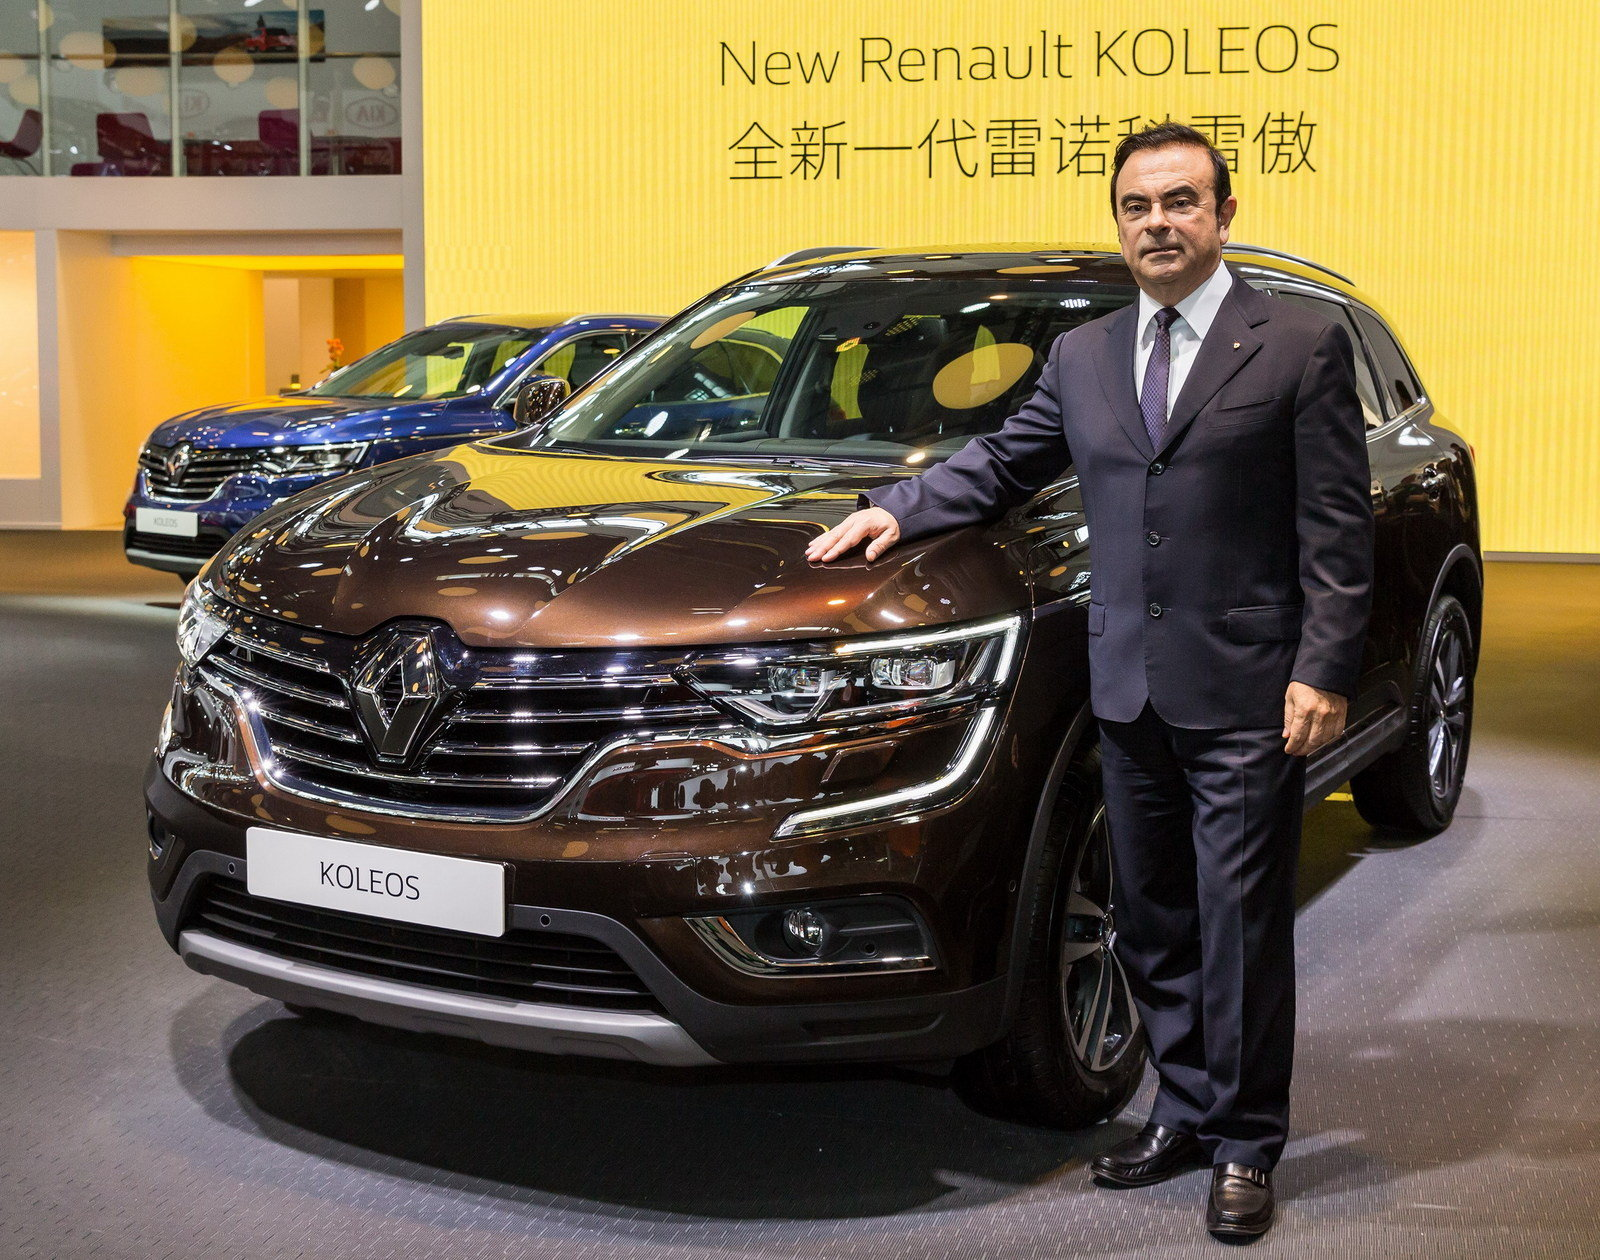 2017 renault koleos picture 674112 car review top speed for Interieur koleos 2017